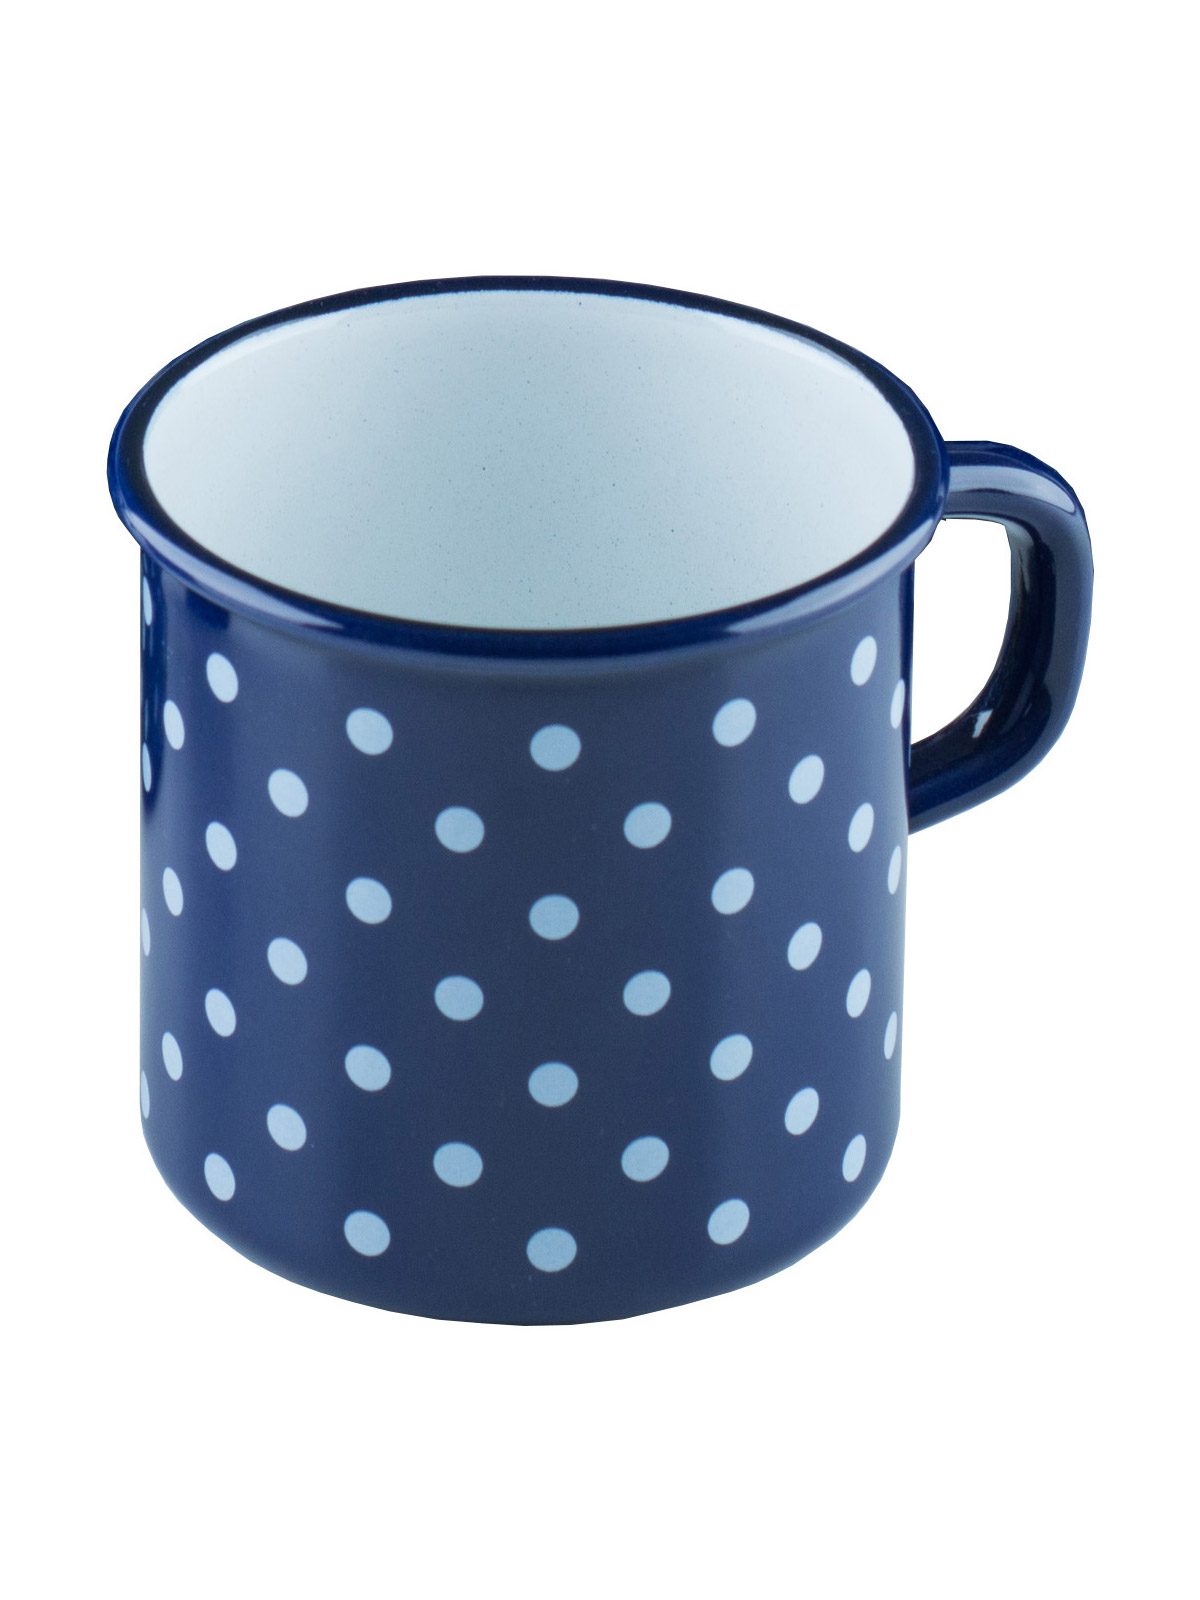 cup blue with dots (0221-75)